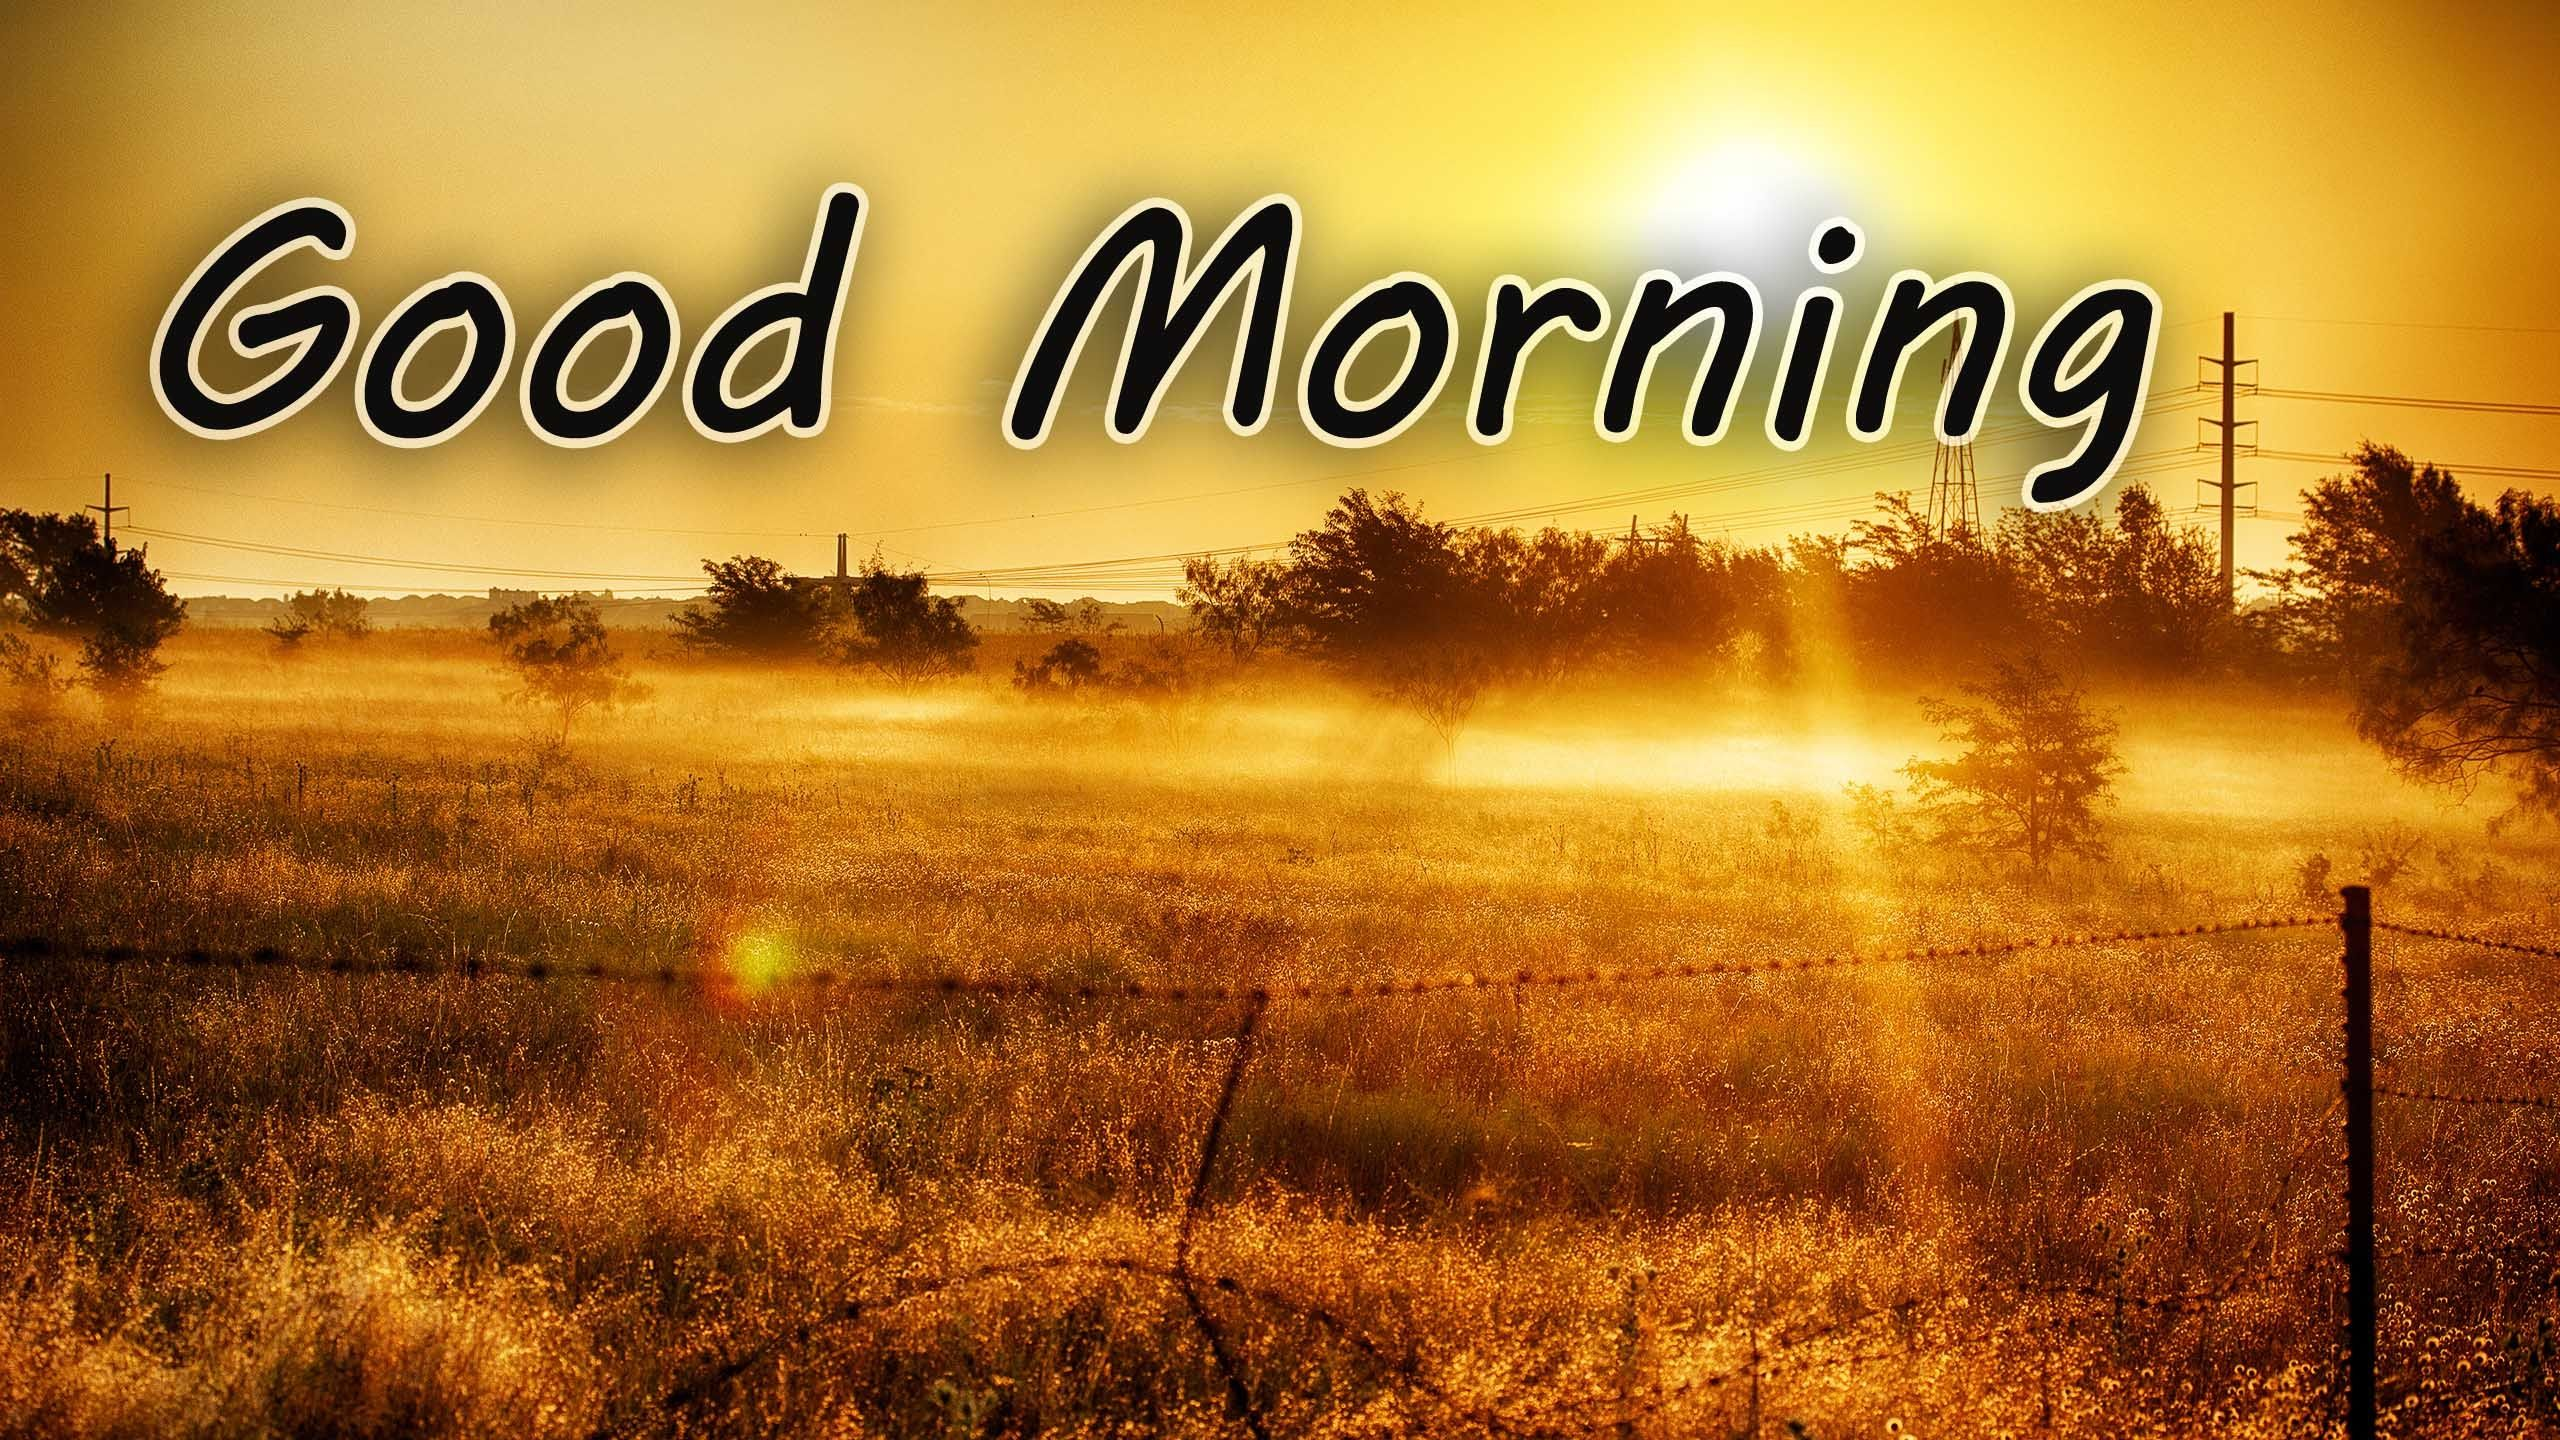 Good Morning Sunrise Pictures, Photos, And Images For